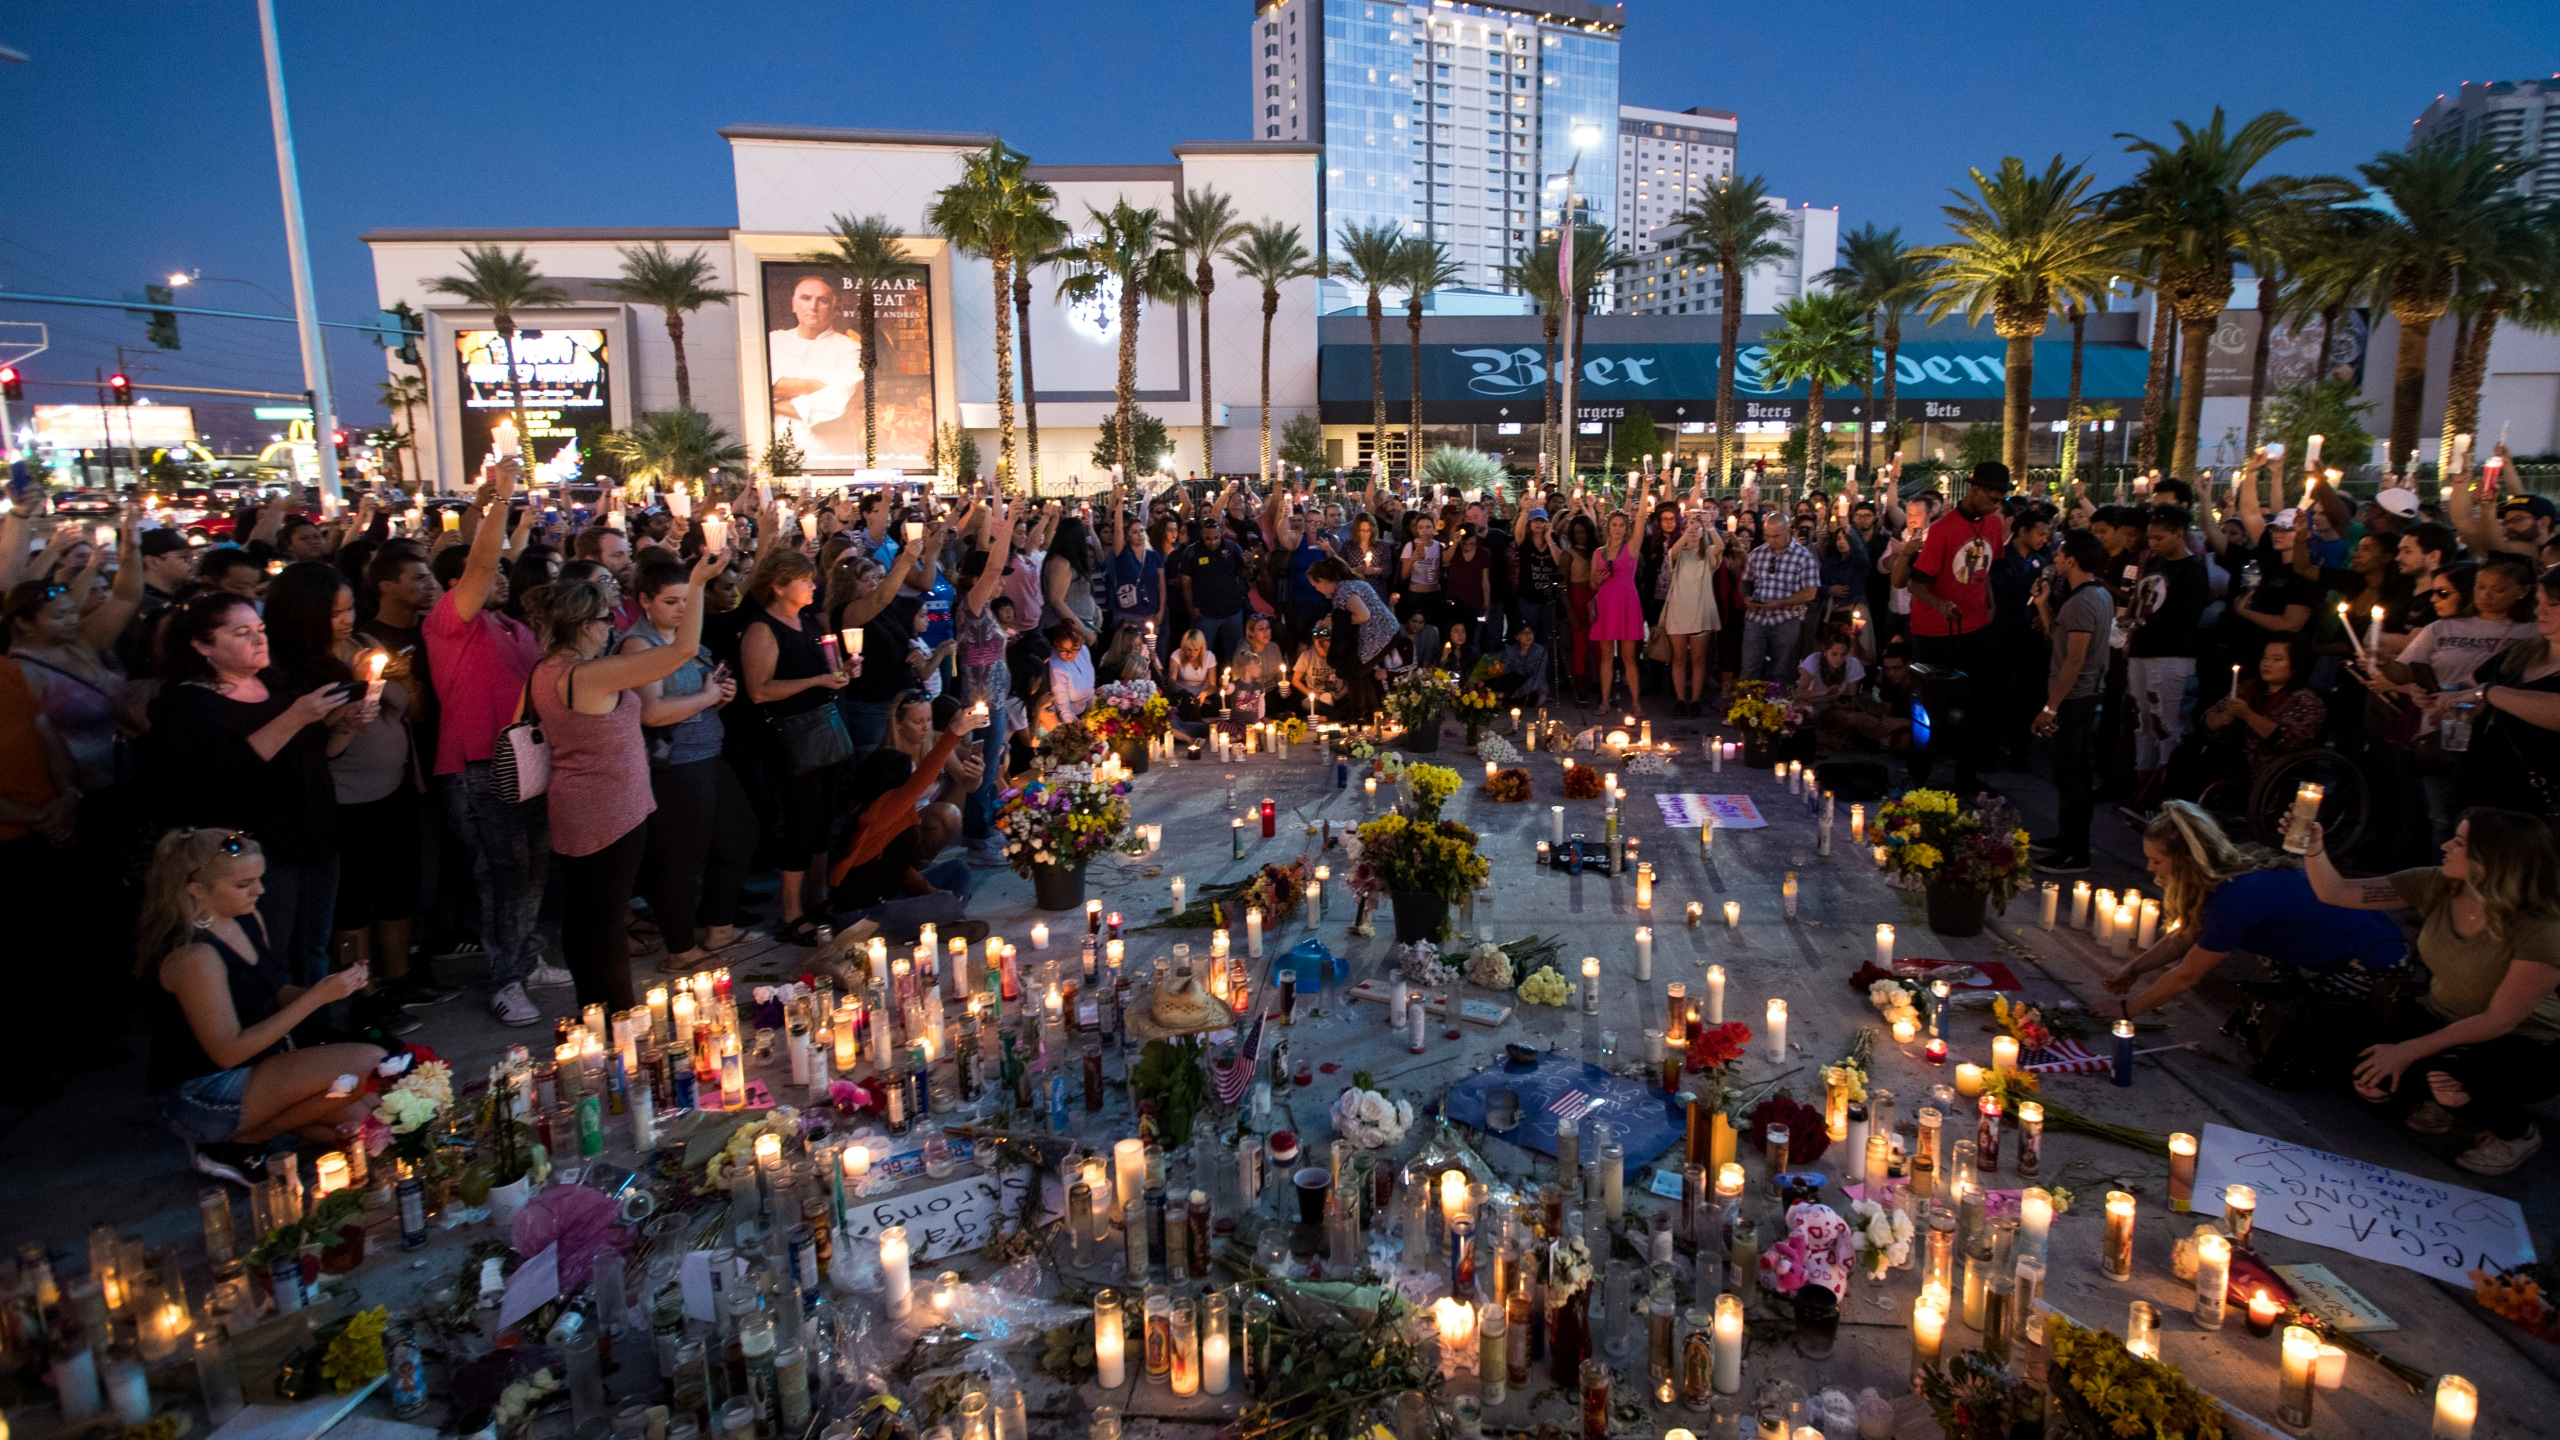 Mourners hold their candles in the air during a moment of silence during a vigil to mark one week since the mass shooting at the Route 91 Harvest country music festival, on the corner of Sahara Avenue and Las Vegas Boulevard at the north end of the Las Vegas Strip, on Oct. 8, 2017, in Las Vegas. (Credit: Drew Angerer/Getty Images)